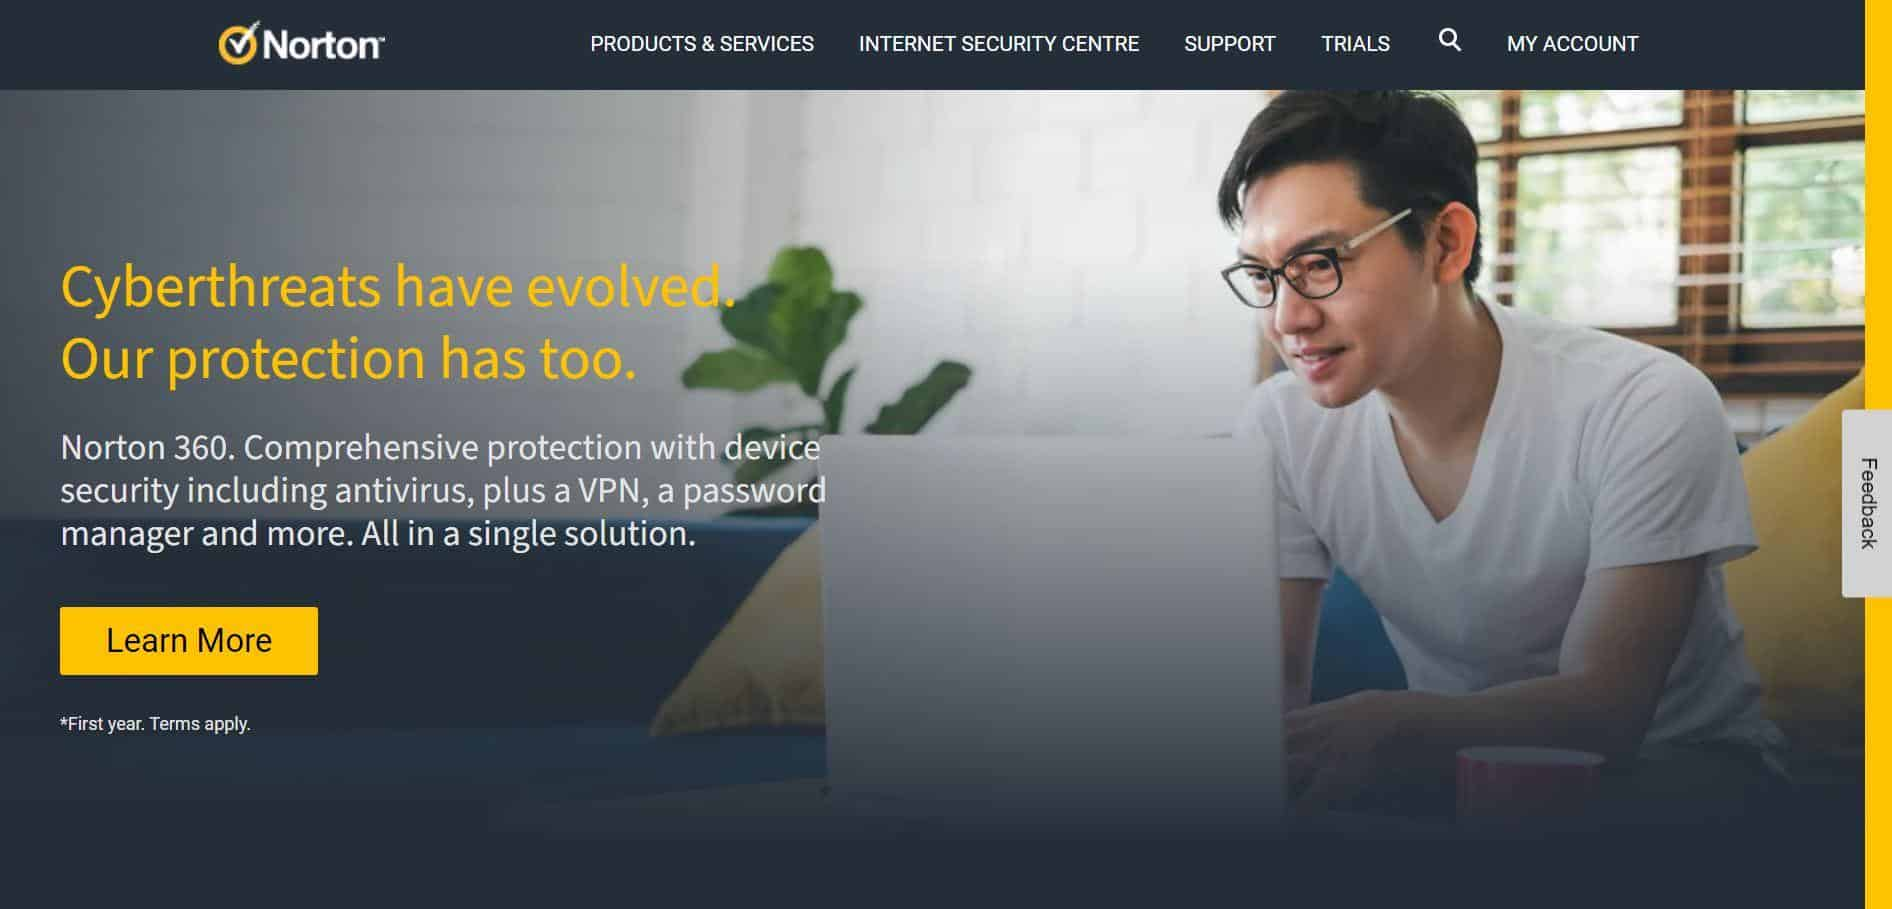 Norton is the Best Singapore VPN App for Fast Network, VPN Singapore Free Unlimited download, Free VPNs For 2021,Totally Free No Payment, where to find free and fast vpn, How Do I Watch Singapore Netflix From Another Country